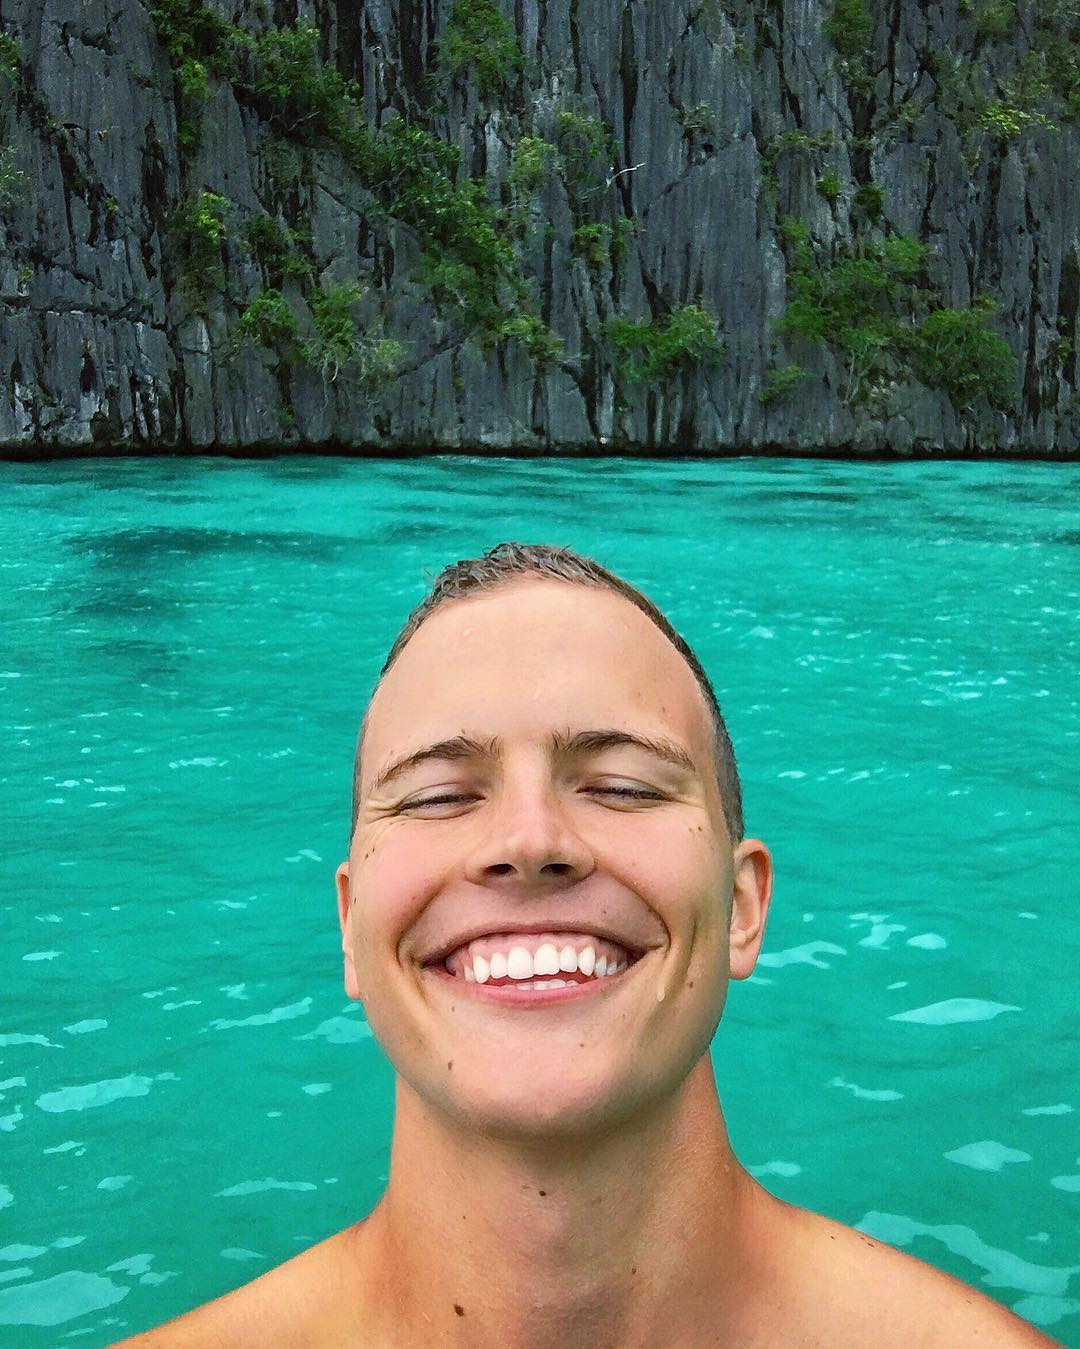 Jerome Jarre Instagram username